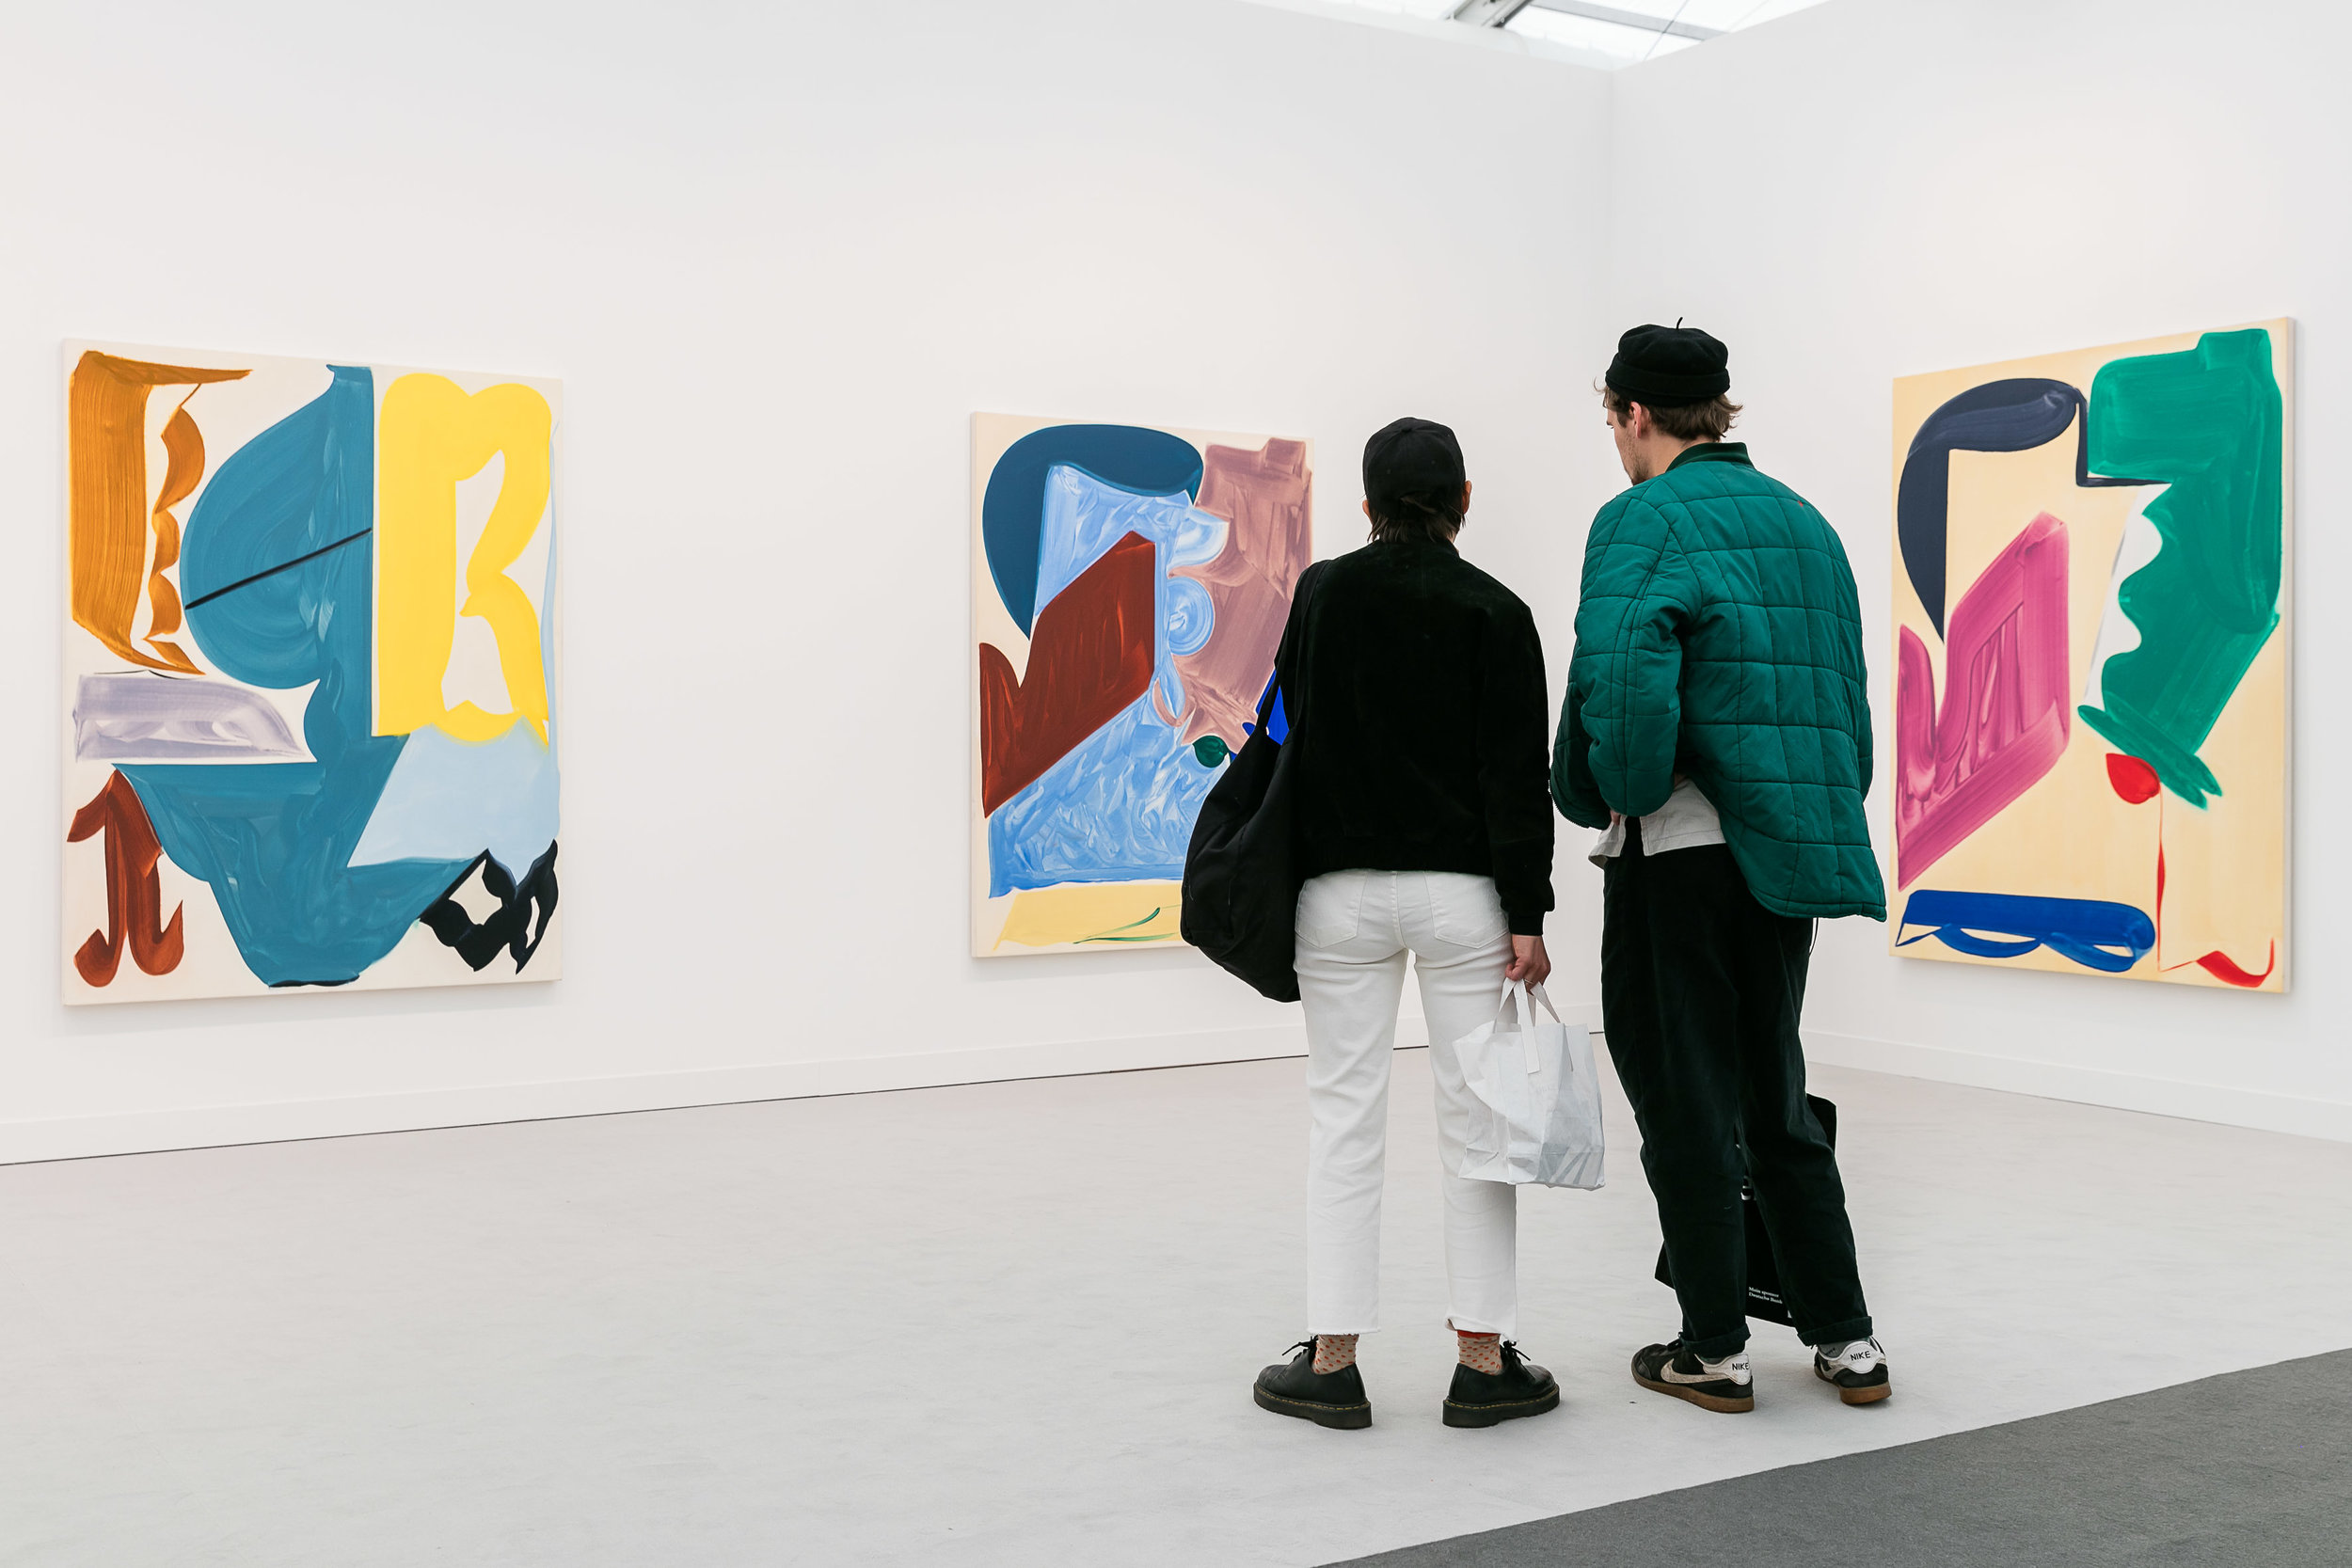 Kate MacGarry gallery at Frieze London. Photo courtesy of Mark Blower/Frieze.